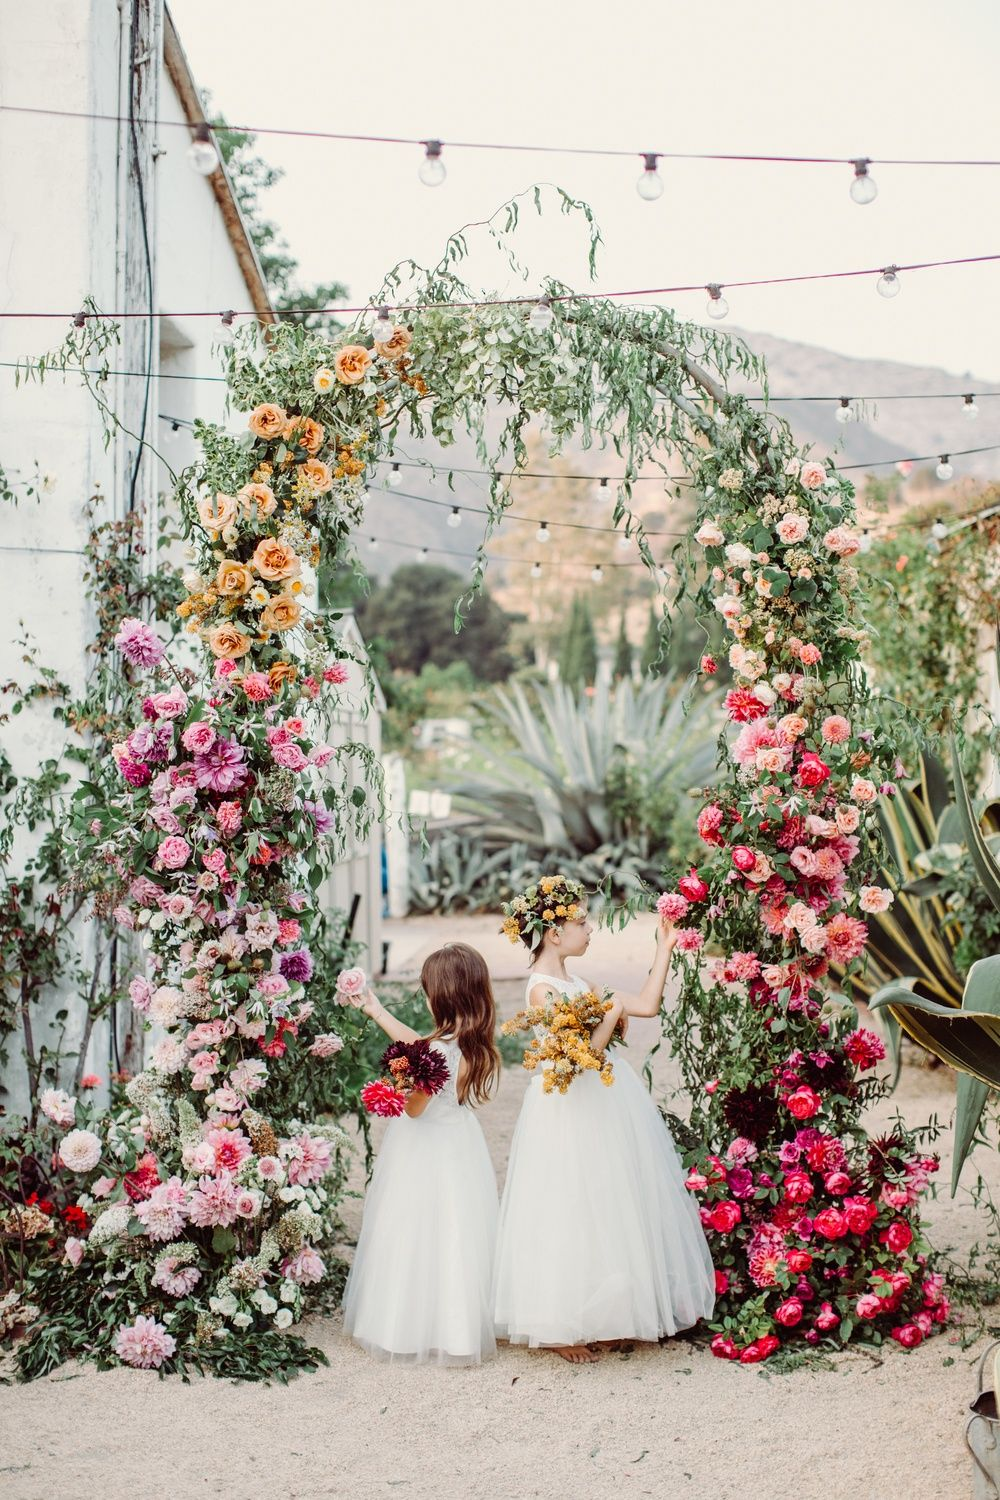 Calling All Flower Lovers This Vibrant Ombre Flower Arch Serves As The Prettiest Wedding Ceremon Floral Wedding Inspiration Floral Wedding Wedding Decorations